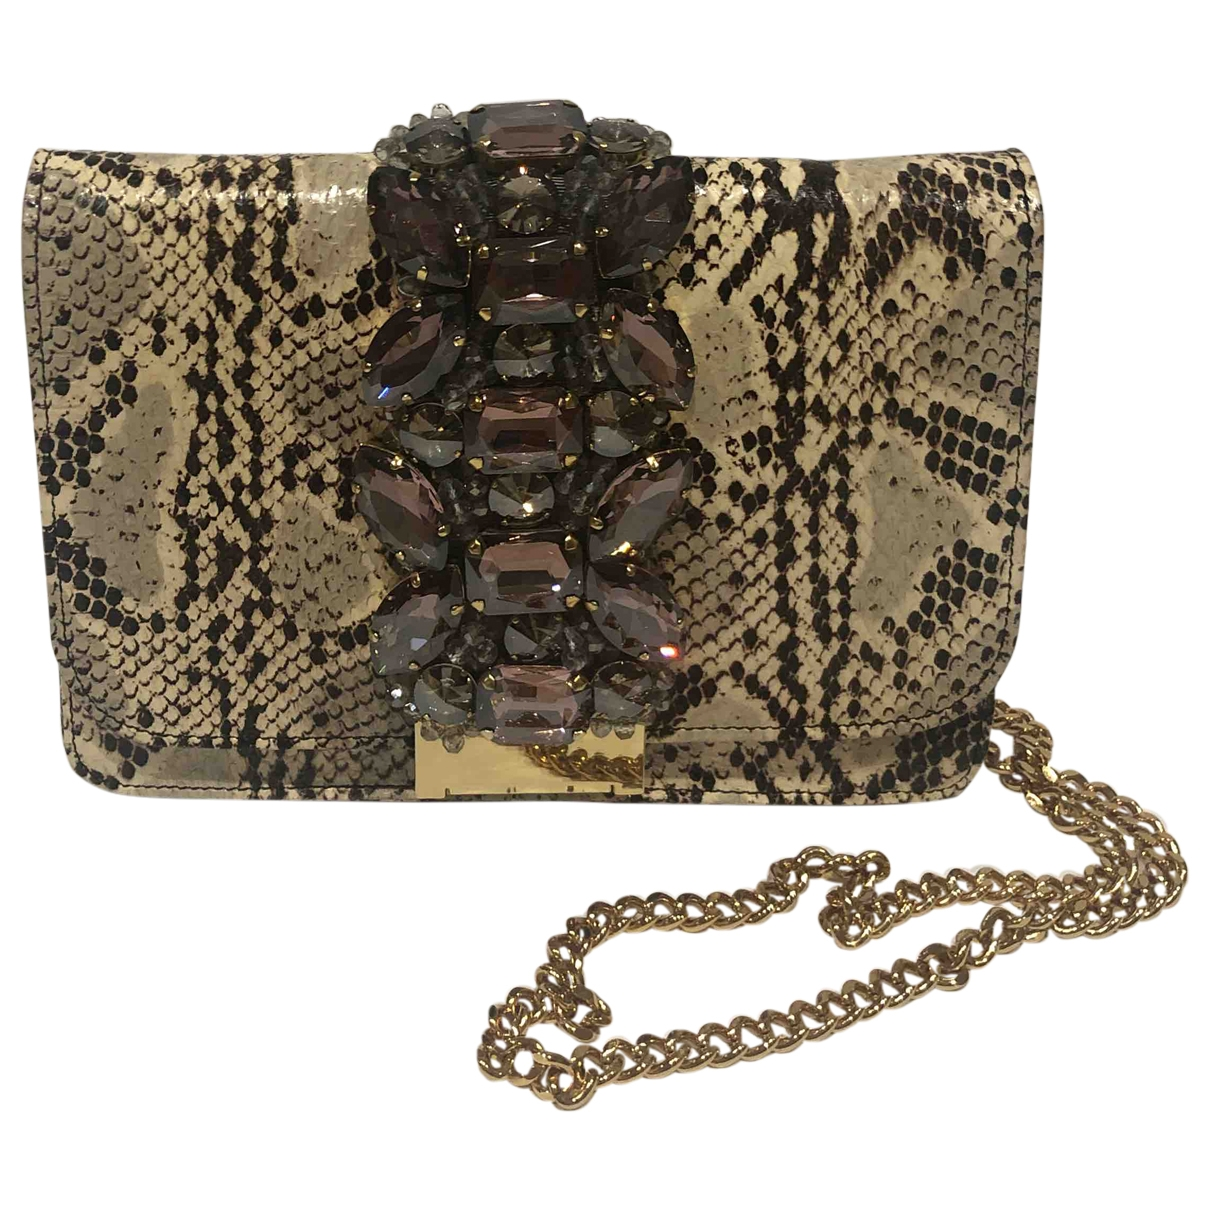 Gedebe \N Grey Python handbag for Women \N